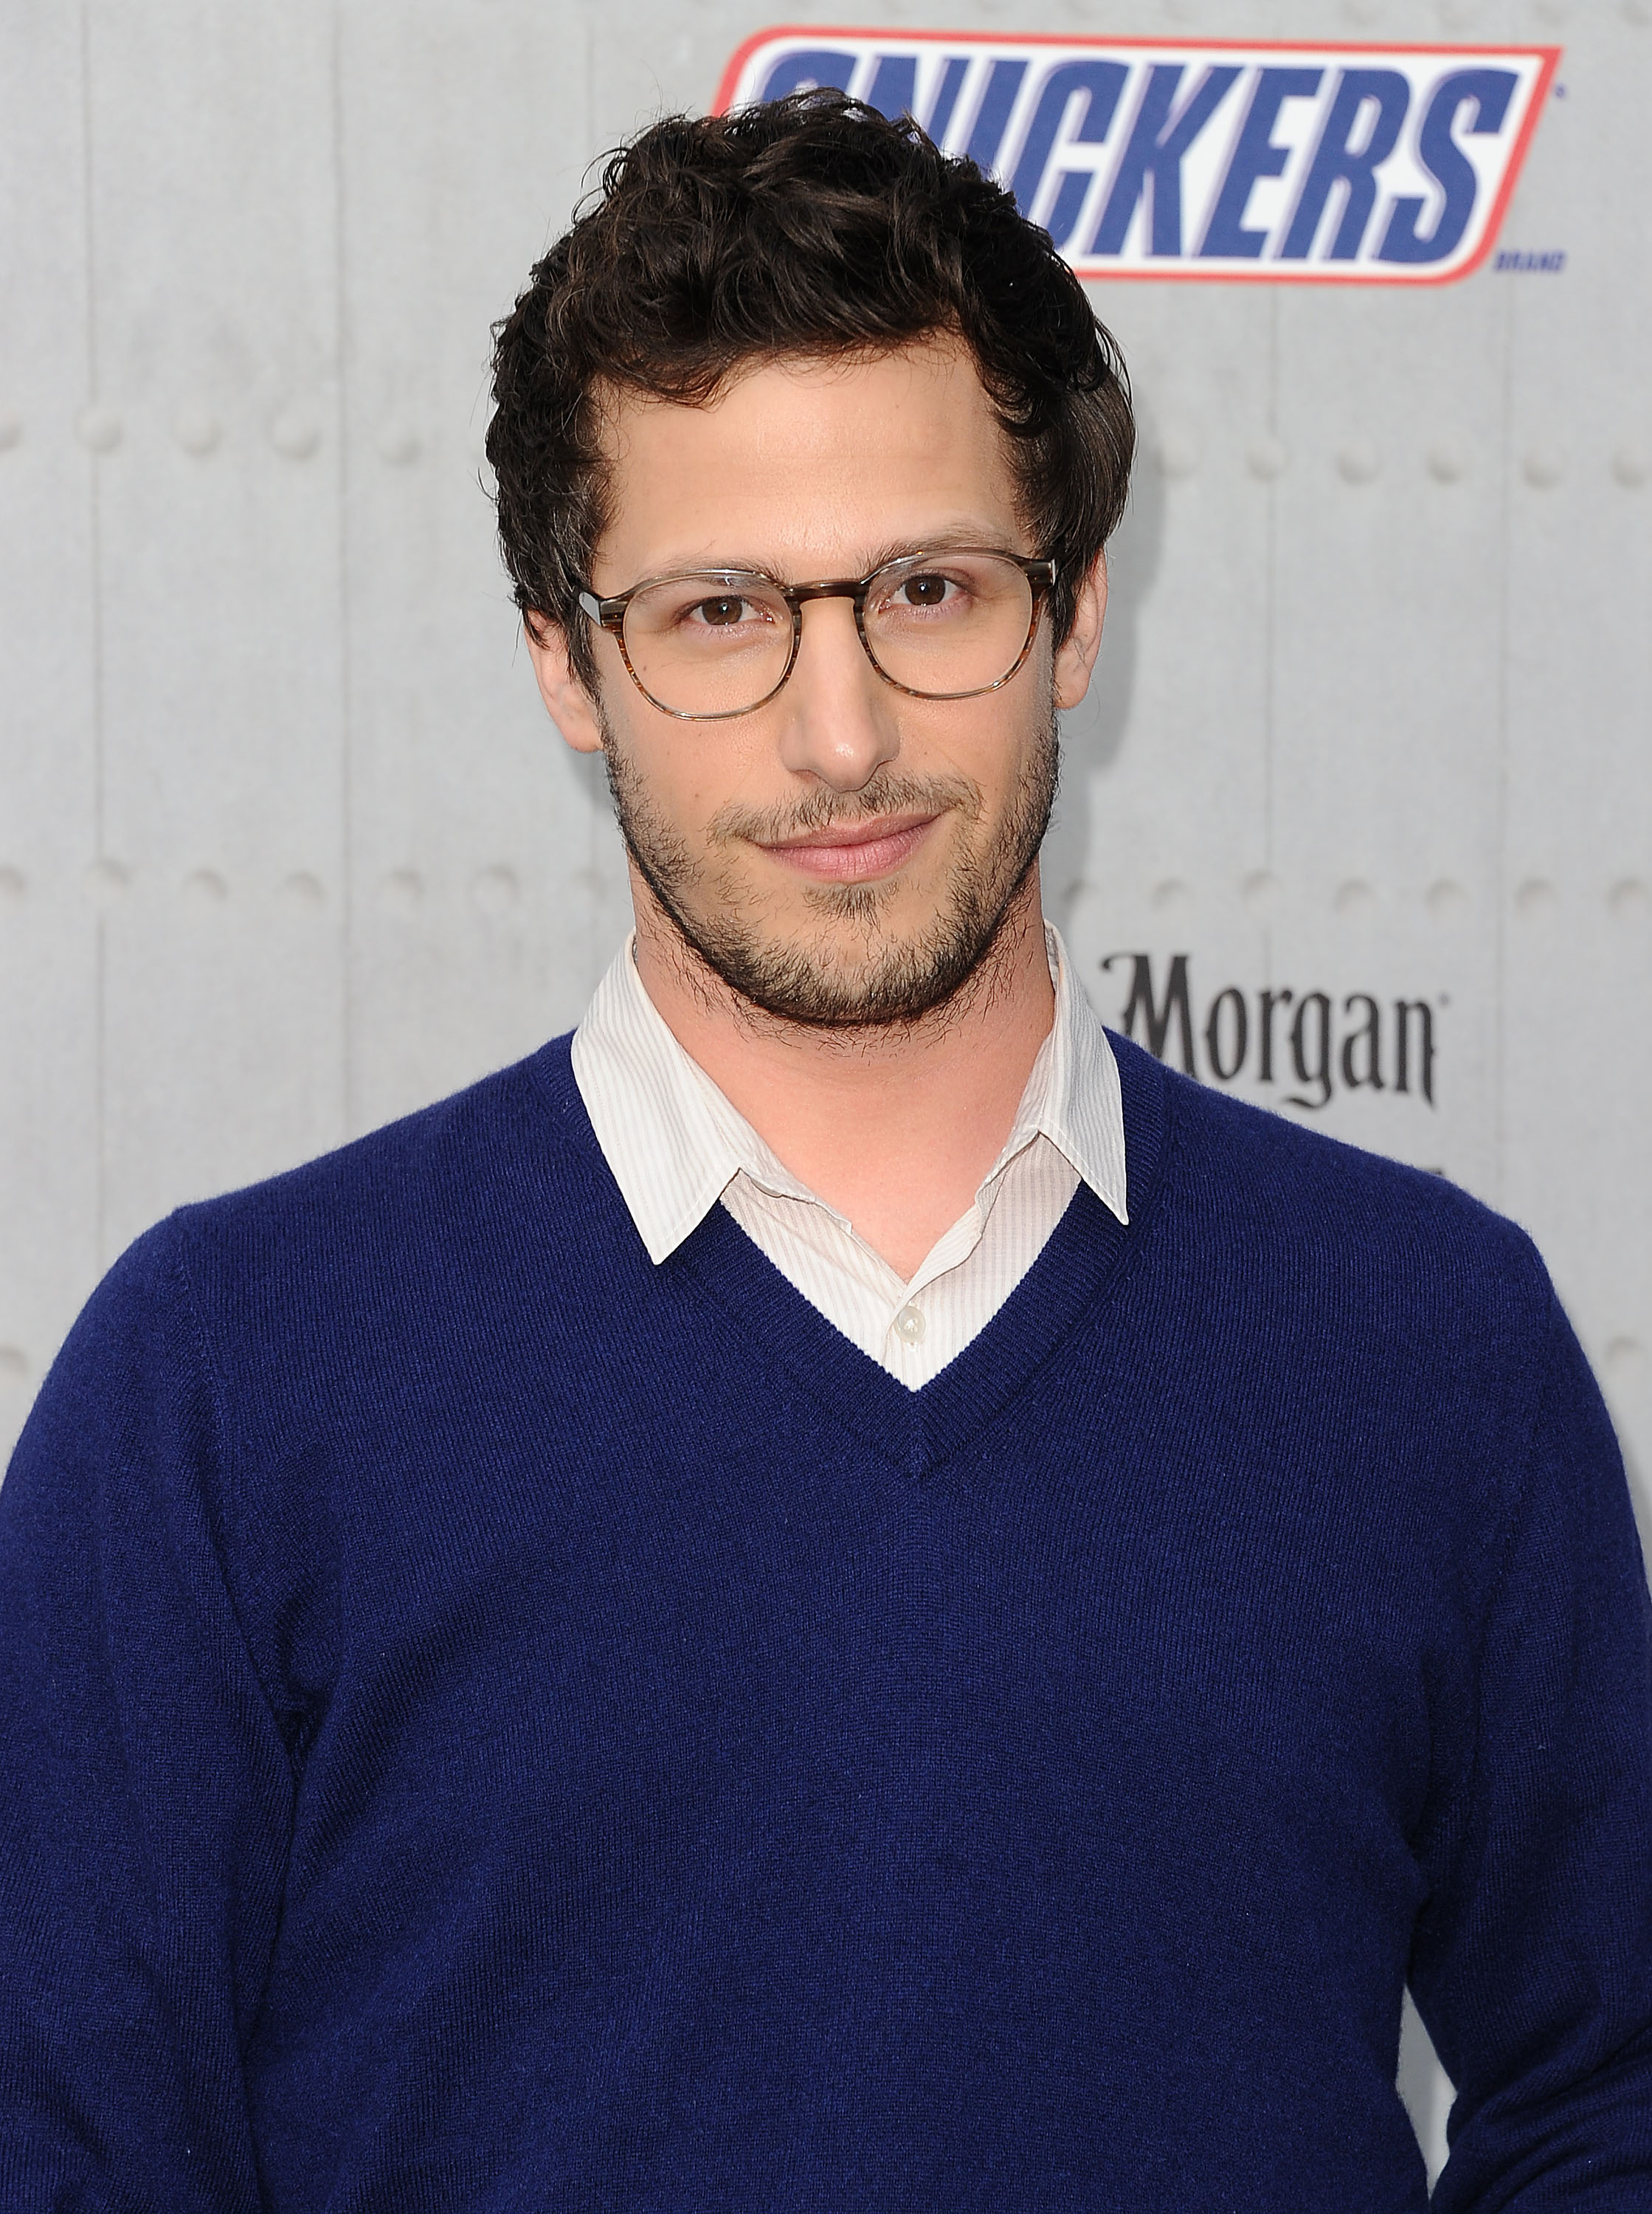 LOS ANGELES, CA - JUNE 07:  Actor Andy Samberg attends Spike TV's  Guys Choice  Awards at Sony Studios on June 7, 2014 in Los Angeles, California.  (Photo by Jason LaVeris/FilmMagic)